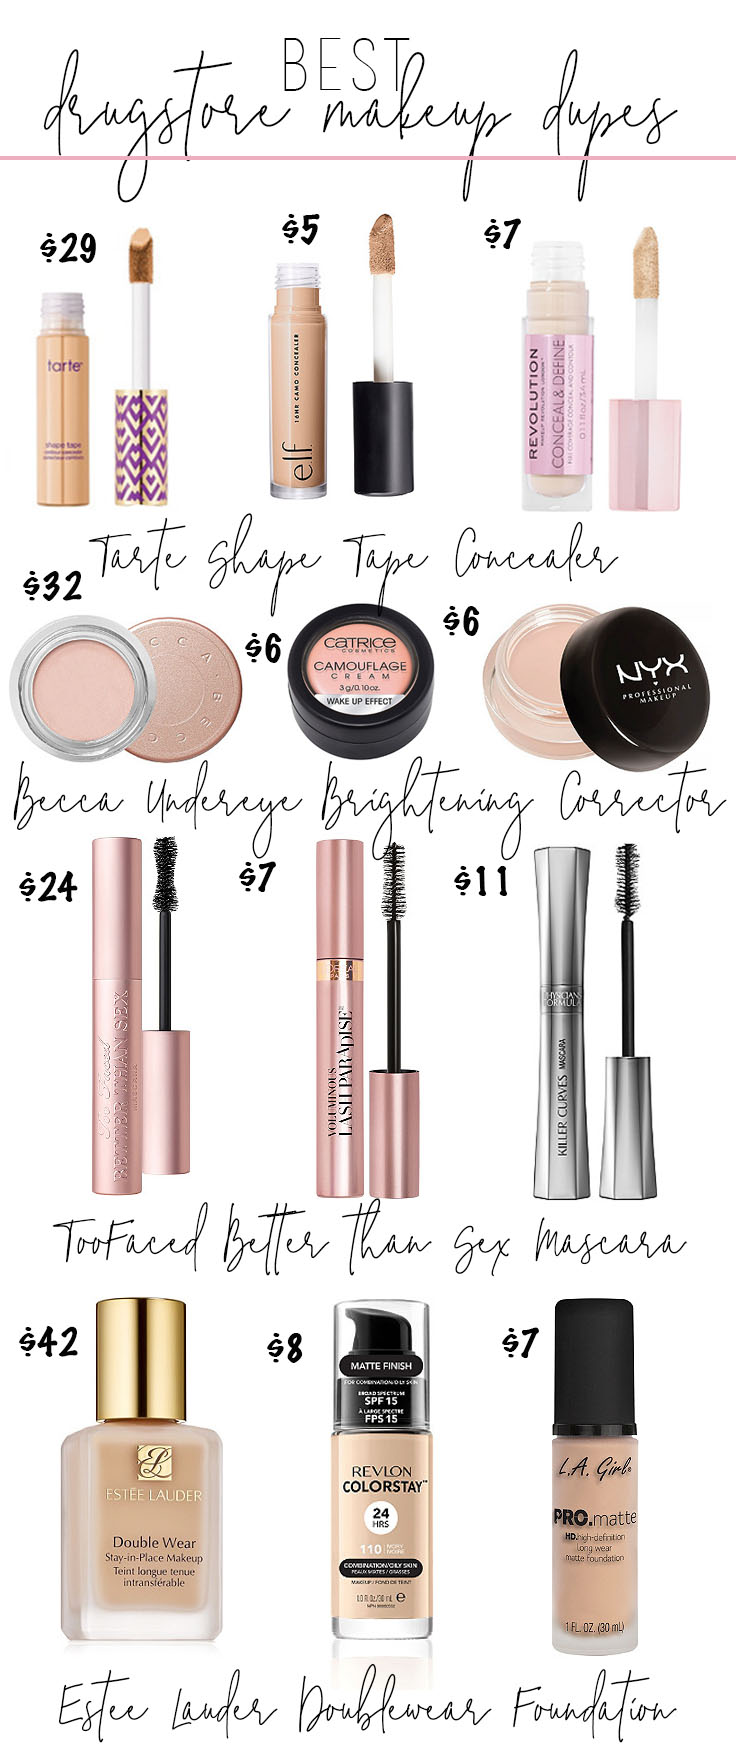 Best Makeup Dupes From The Drugstore Drugstore Makeup Dupes